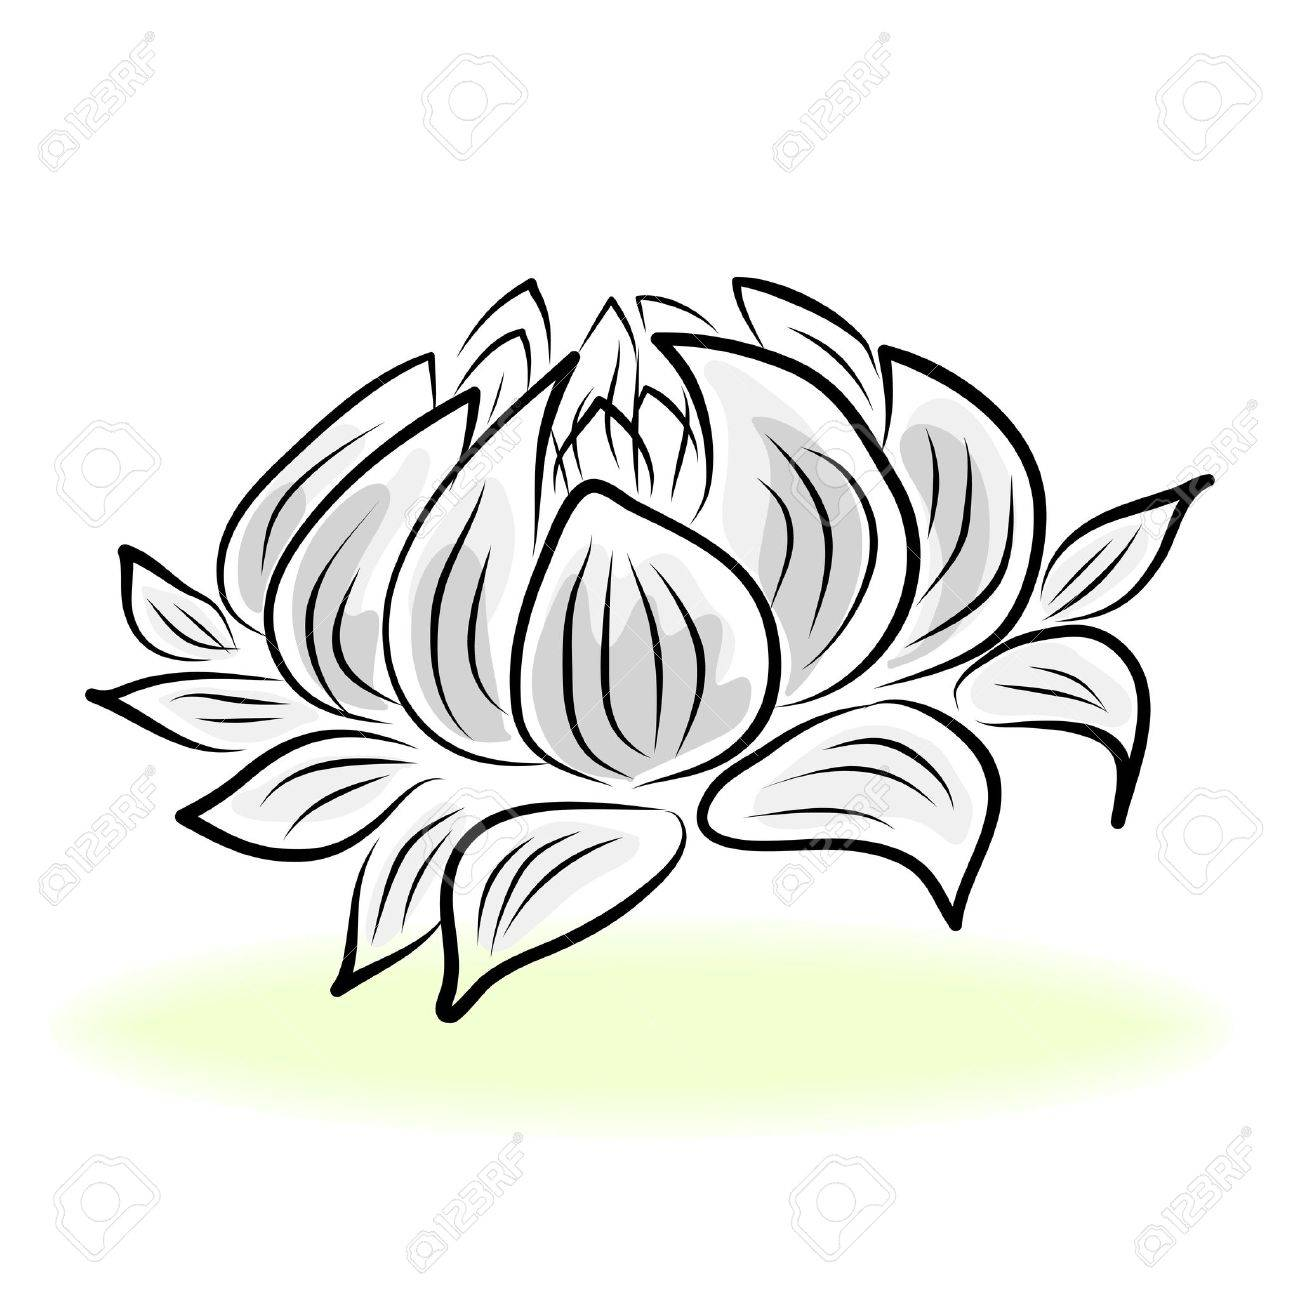 Lotus flower line drawing free download best lotus flower line 1300x1300 hand drawing water lily lotus flower royalty free cliparts izmirmasajfo